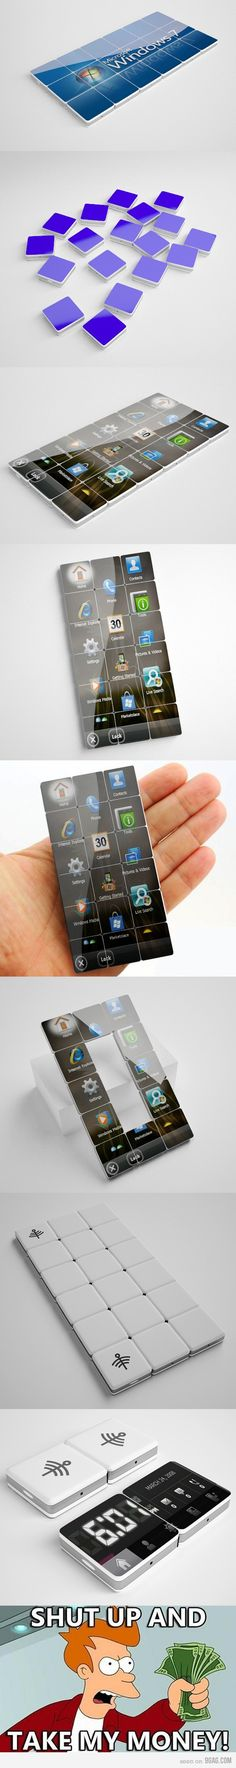 Want whatever this is. I assume phone but it's awesome. Not sure what the bottom means but the tile thing is what I want